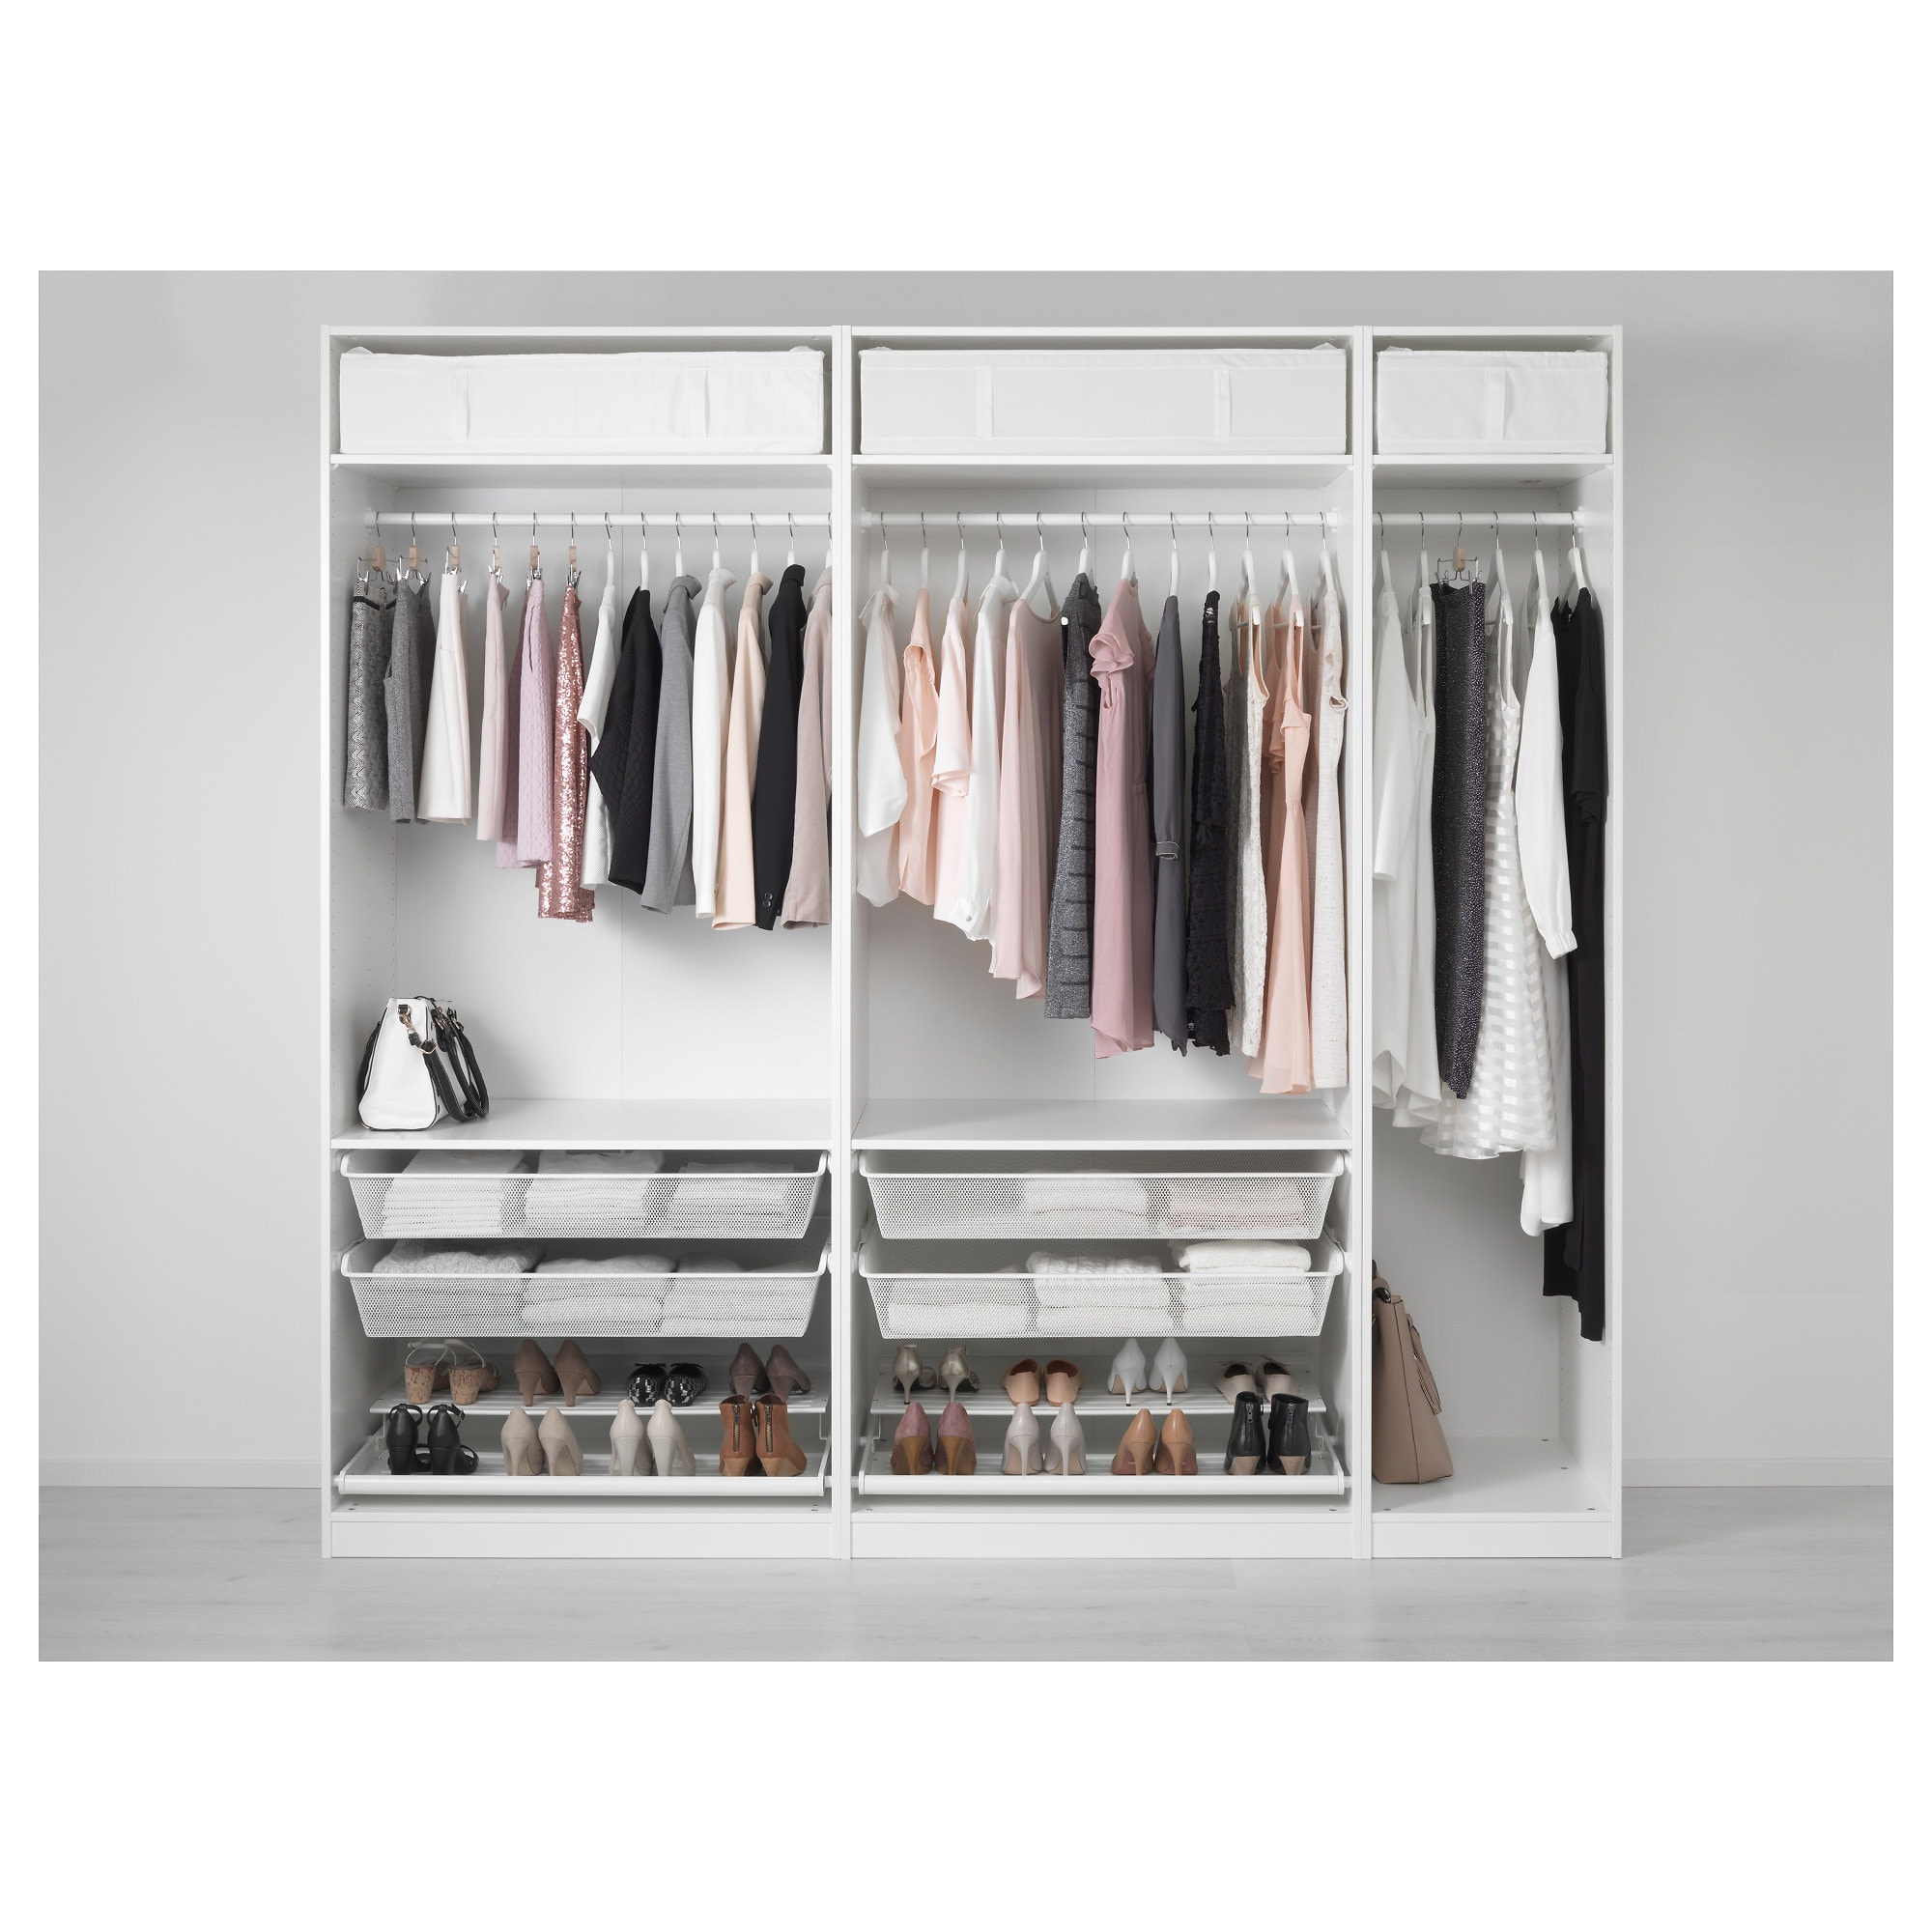 Ikea Wardrobe Tidy Pax Wardrobe White Products In 2019 Ikea Wardrobe